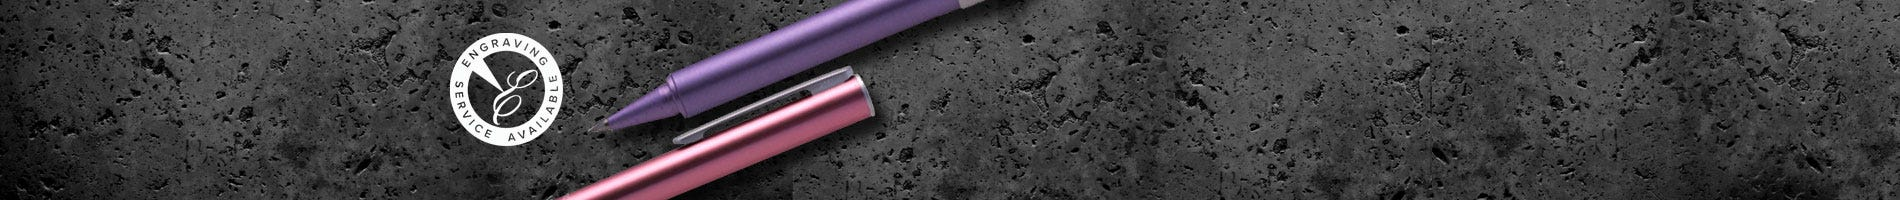 OHTO Tasche pink and purple rollerball pens